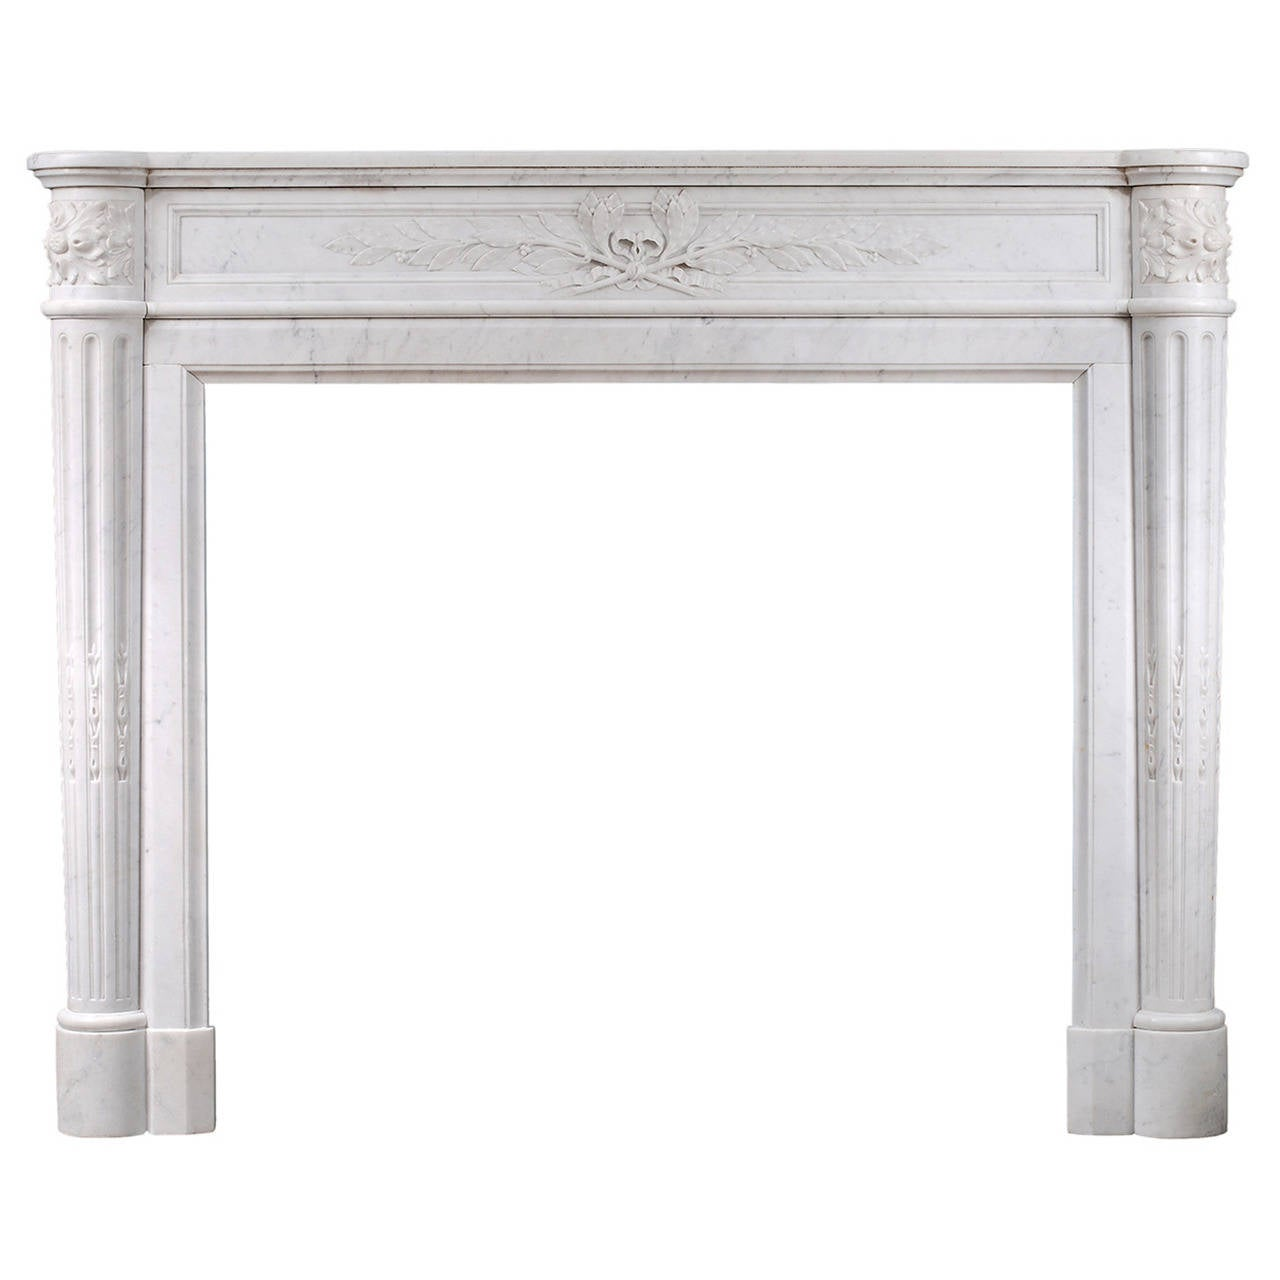 19th Century French Louis XVI Style Mantel Piece in Light Carrara Marble